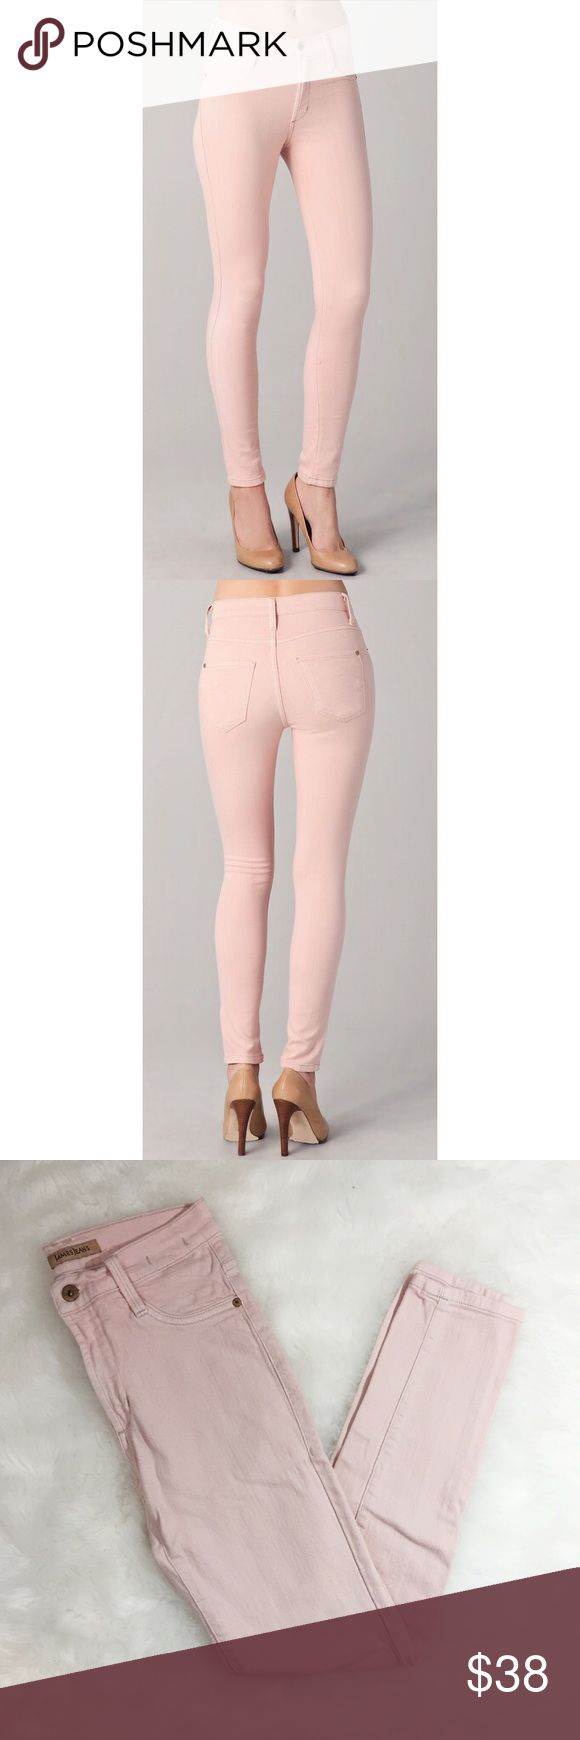 """•James Jeans• Twiggy High Class Skinny Jeans A high-waisted skinny jean tailored to hug your curves and hold you in for your longest legs ever. 28"""" inseam.  EUC - no signs of wear. Made in America. James Jeans Jeans Skinny"""